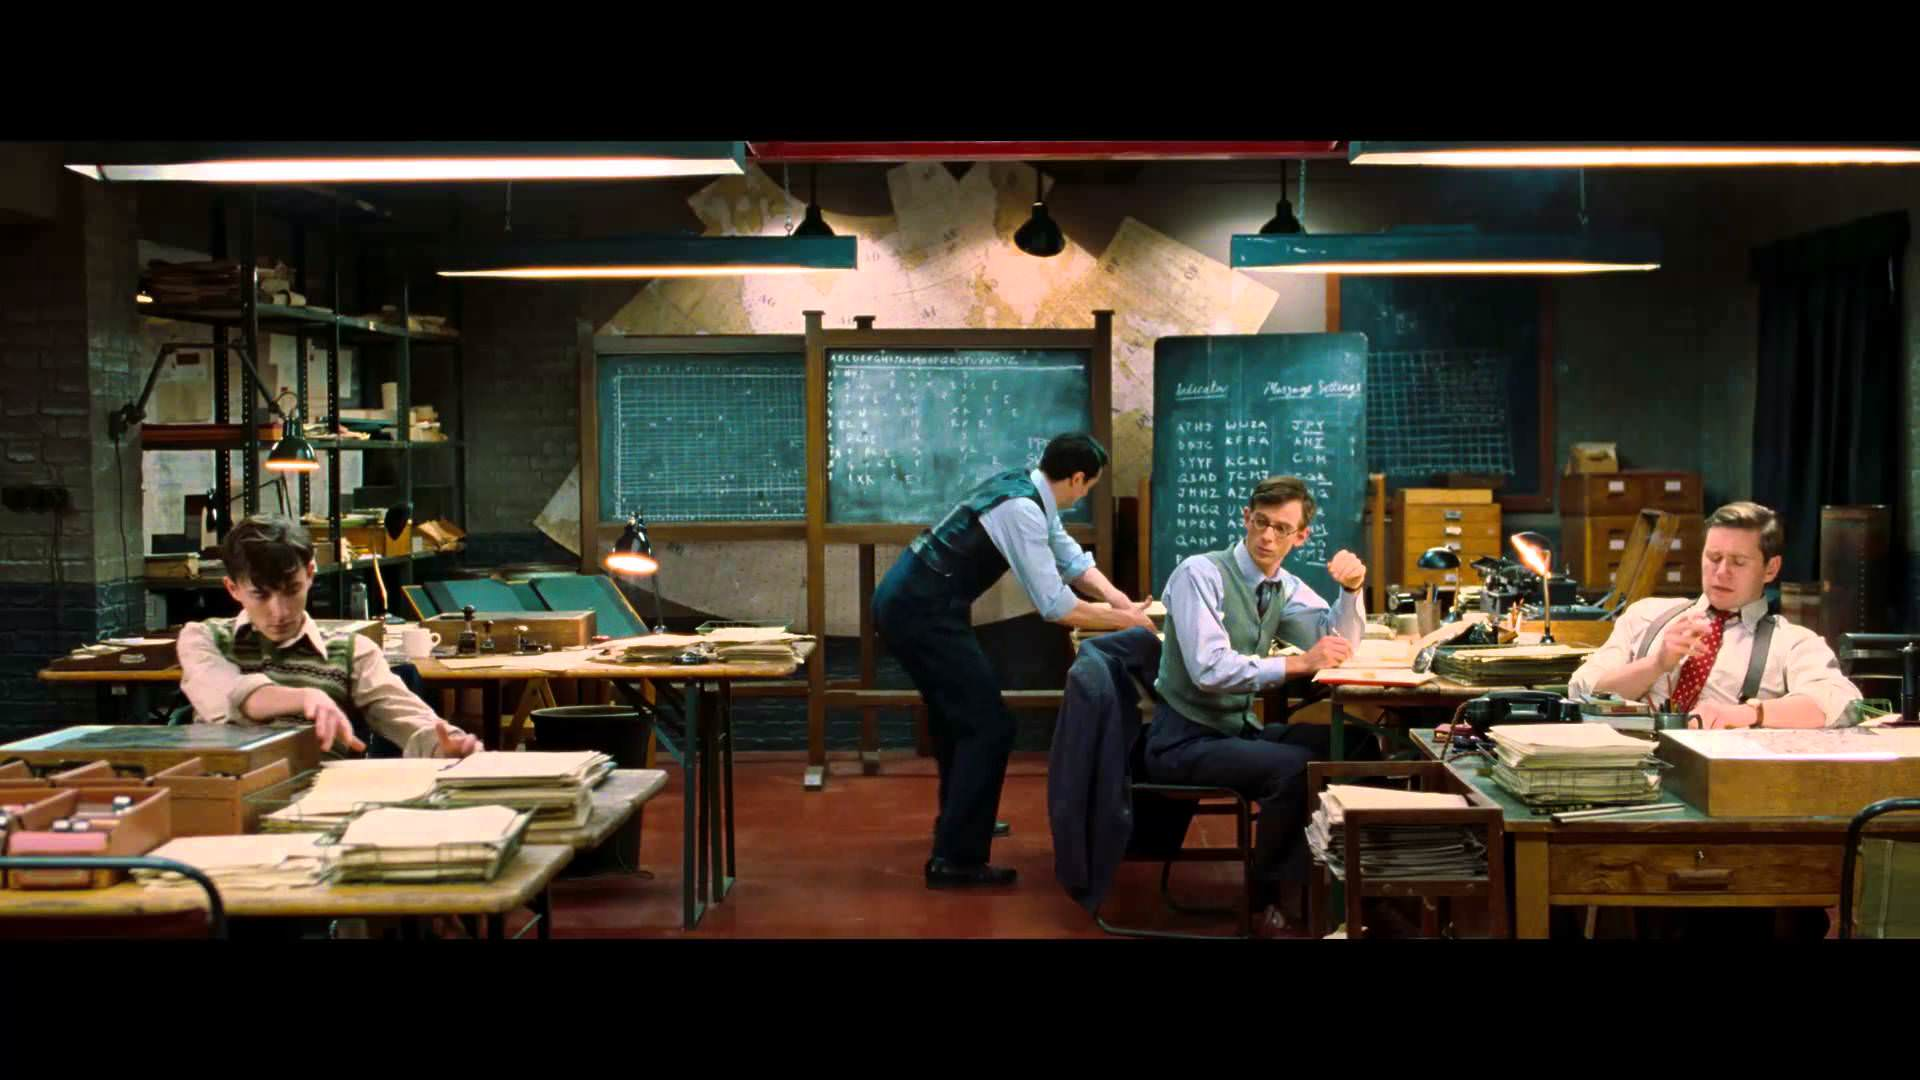 """Video thumbnail for youtube video Poster y trailer para """"The Imitation Game"""" - Cine3.com"""